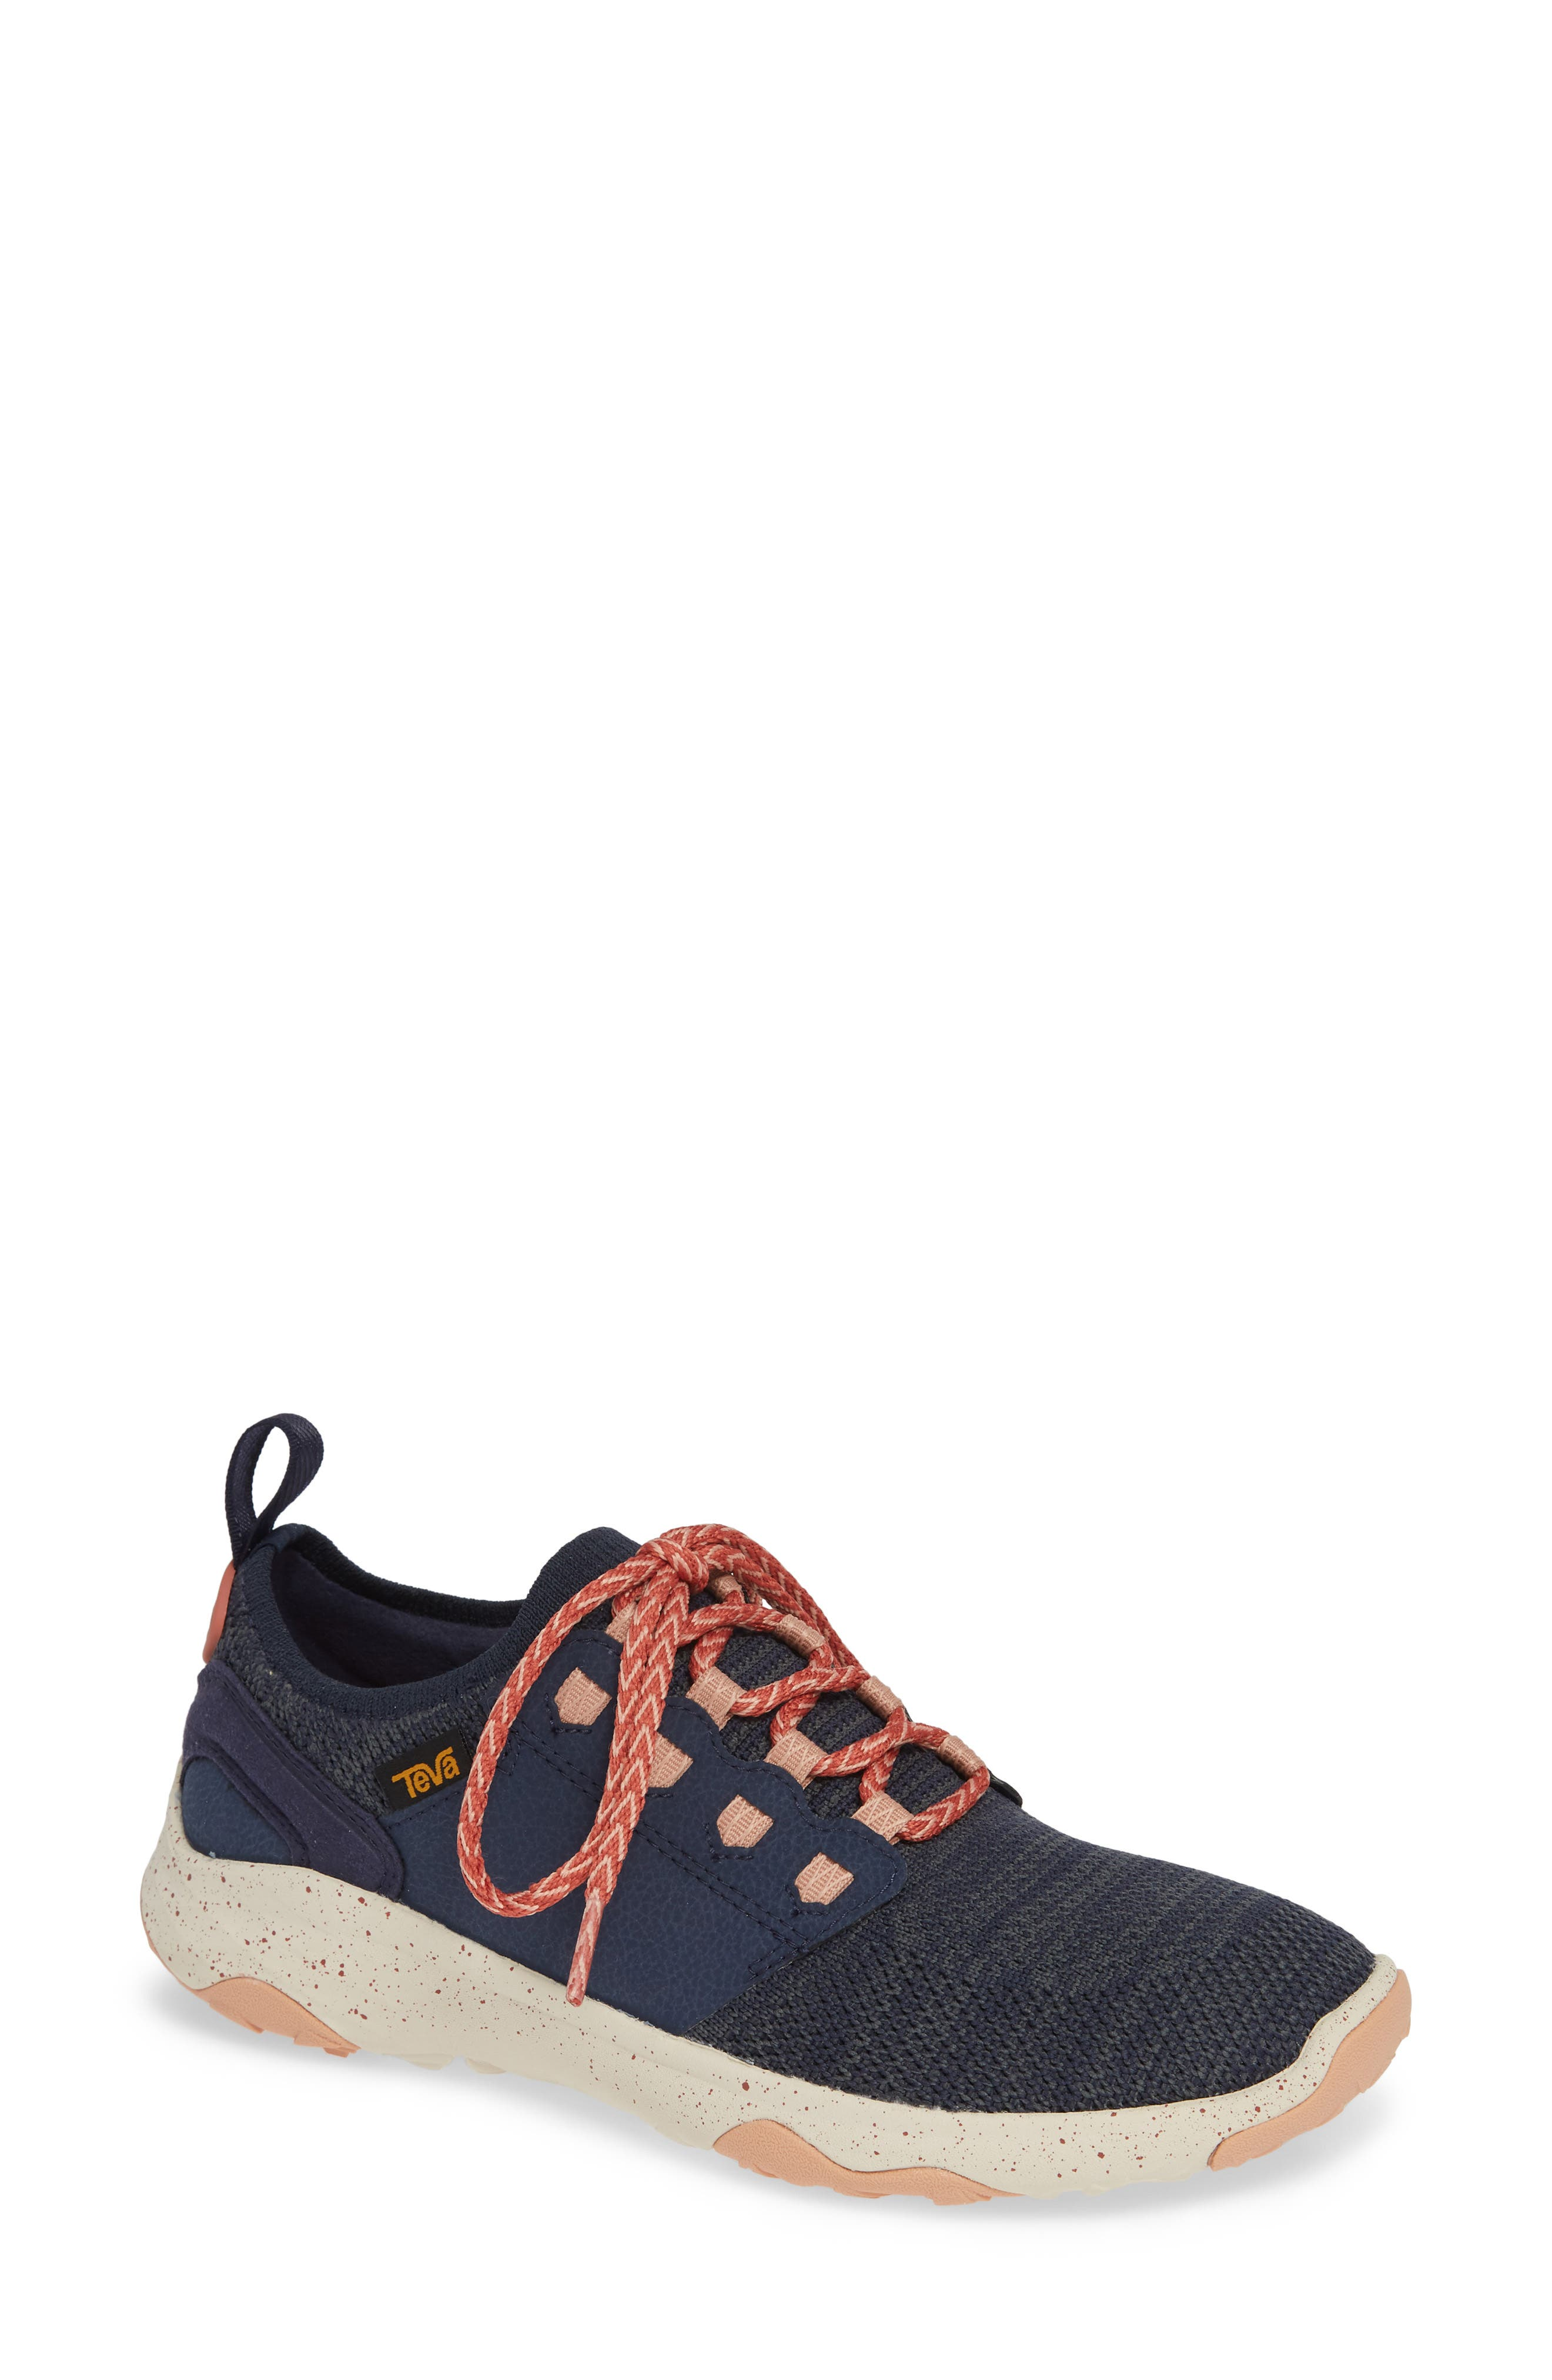 Arrowood 2 Waterproof Knit Sneaker,                             Main thumbnail 1, color,                             MIDNIGHT NAVY FABRIC